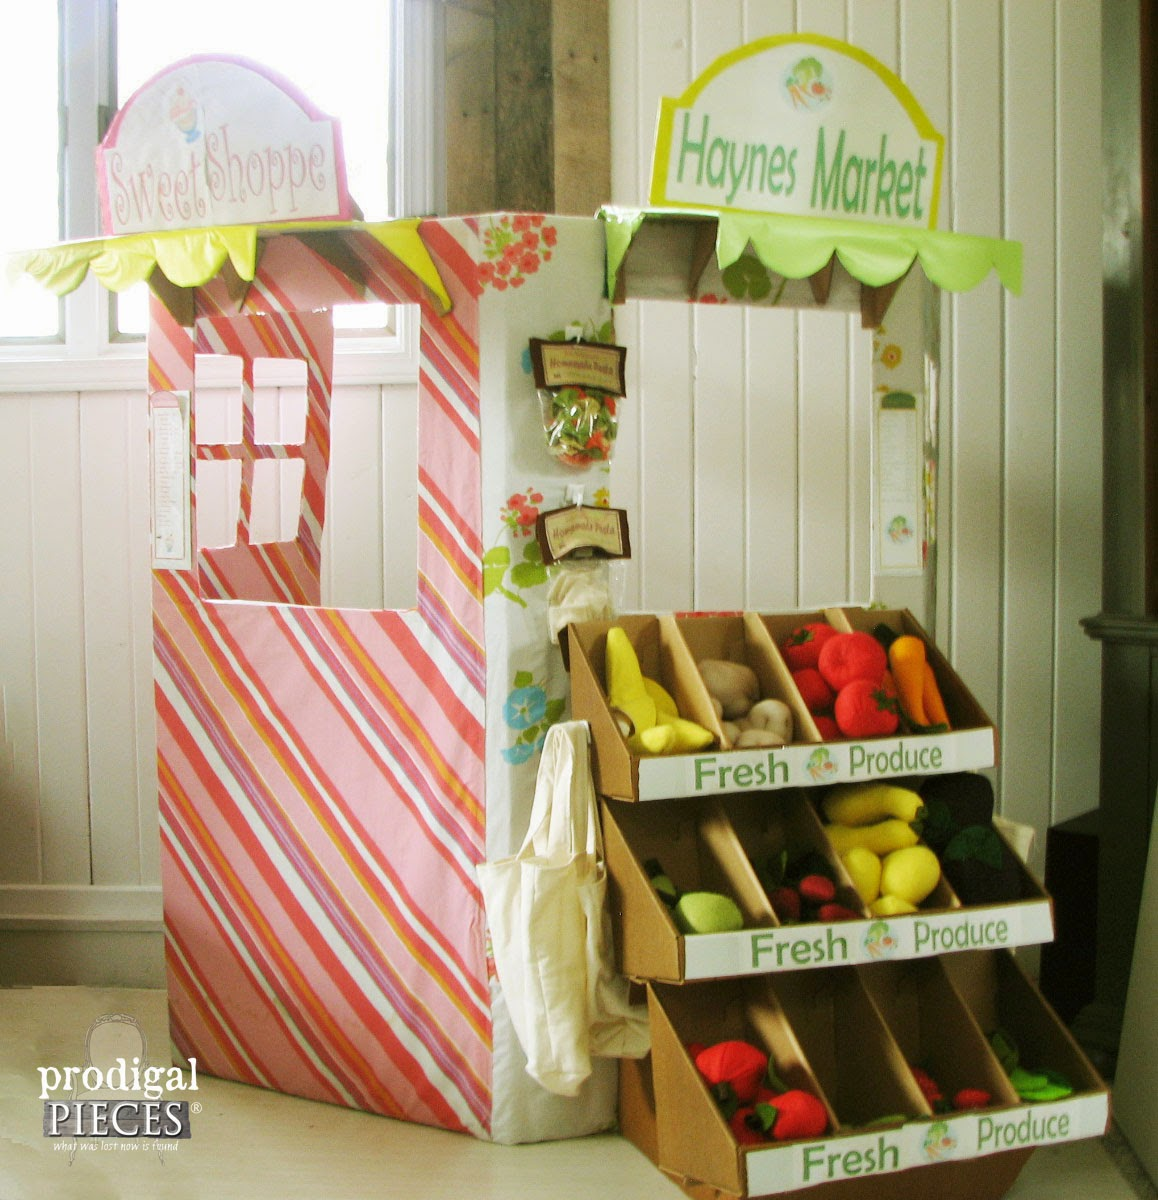 Handmade Holidays: Cardboard & Wool Felt Farmers Market & Sweet Shoppe Play Set by Prodigal Pieces www.prodigalpieces.com #prodigalpieces